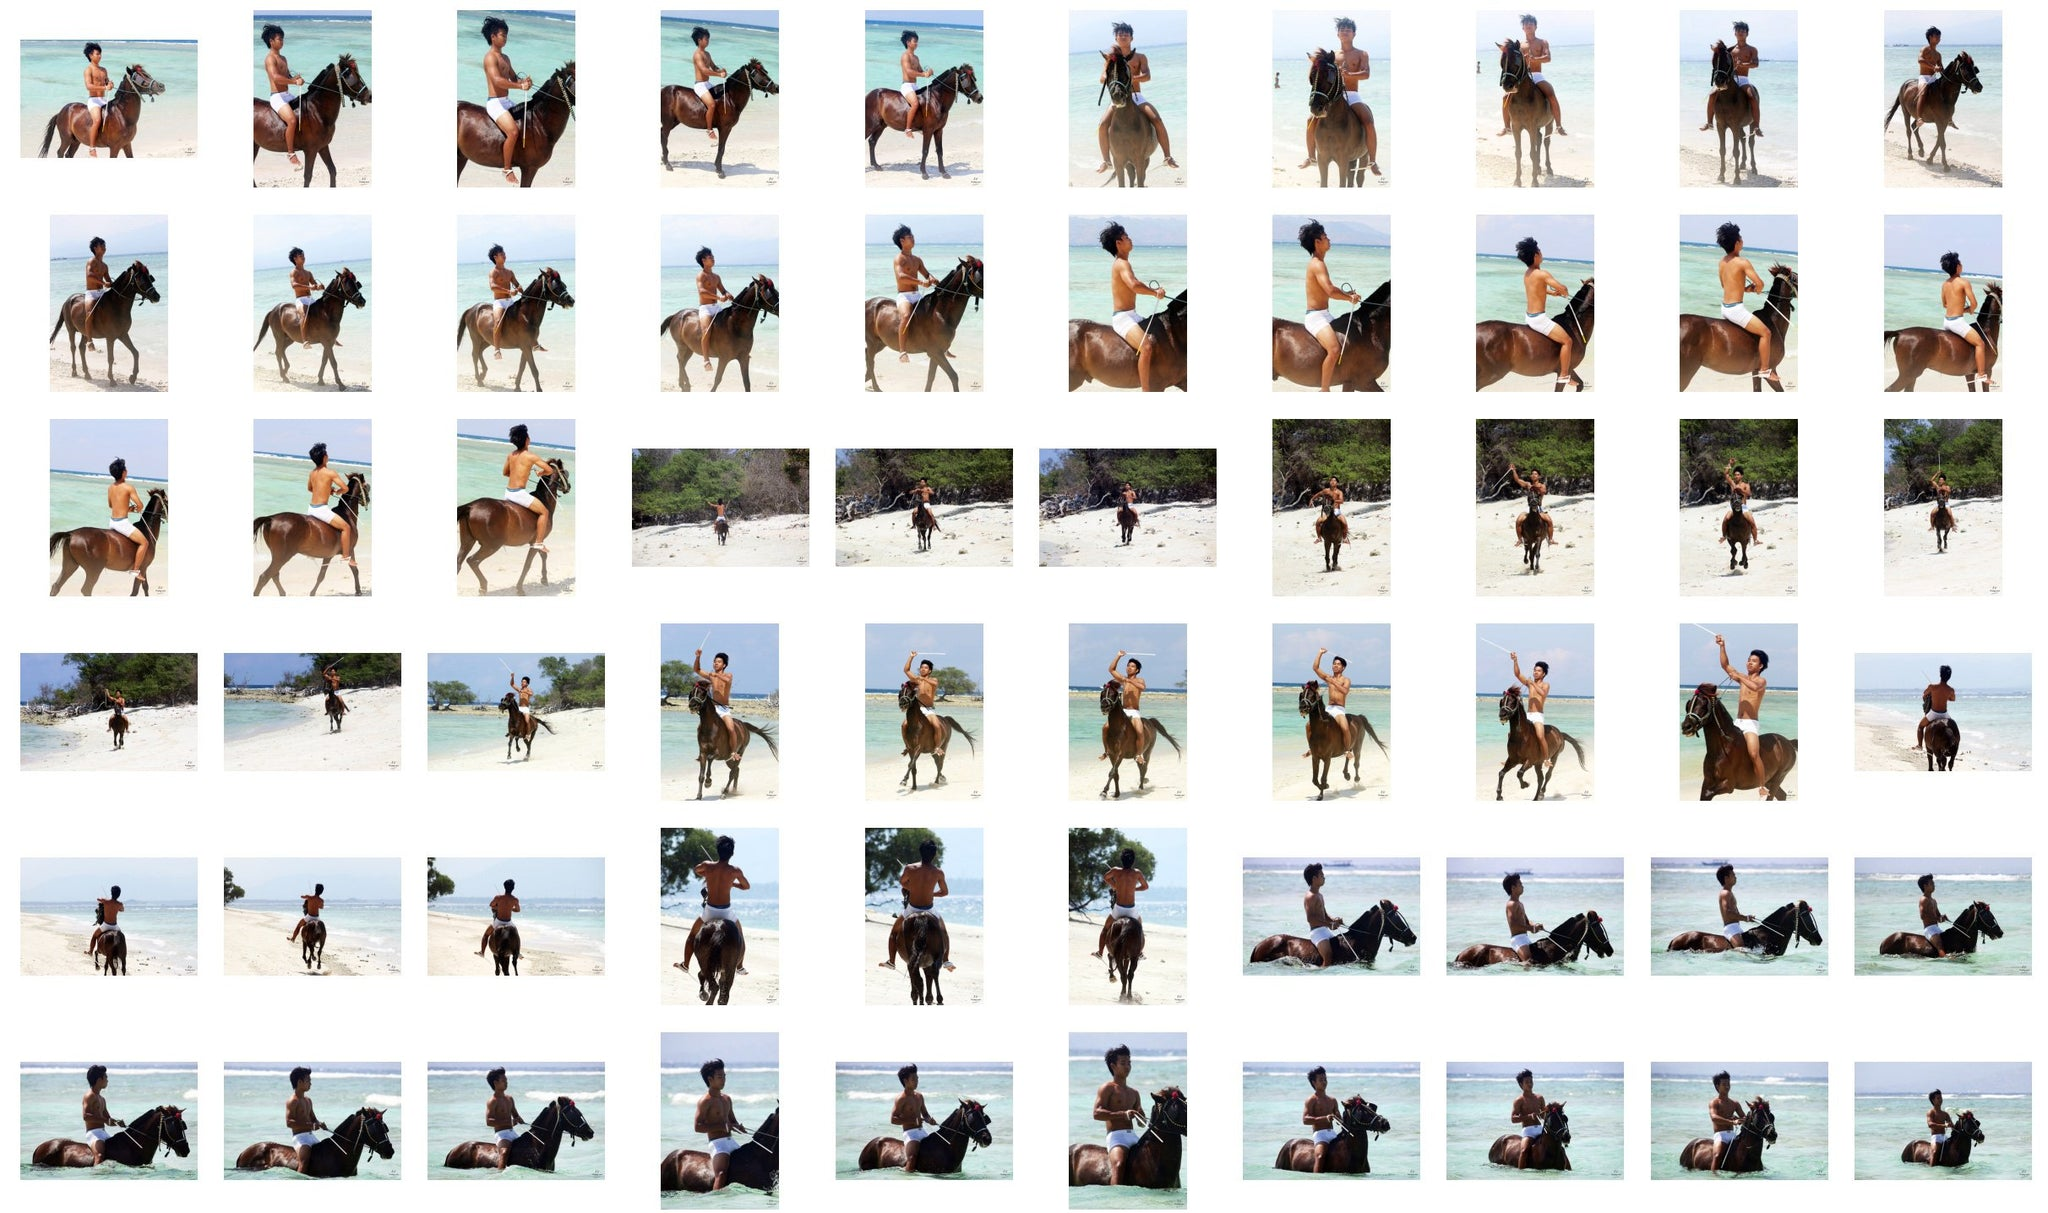 Intan in Briefs Riding Bareback on Brown Horse - Riding.Vision